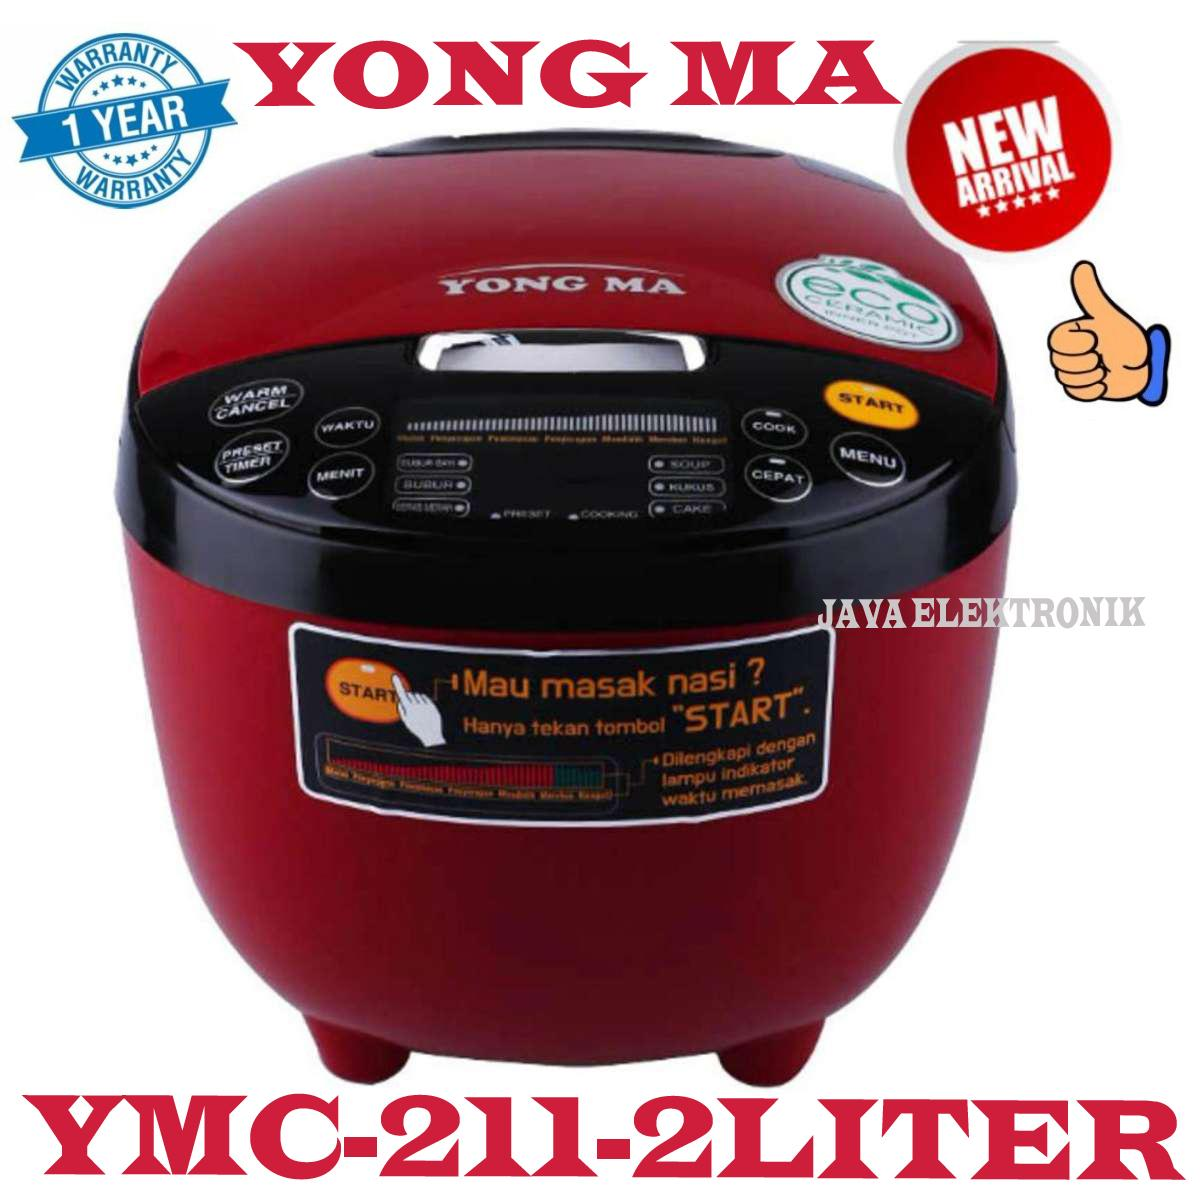 Kelebihan Yong Ma Digital Rice Cooker 2 L Ymc211 Merah Terkini Magic Com Mc5600r Multi Liter Garansi Resmi